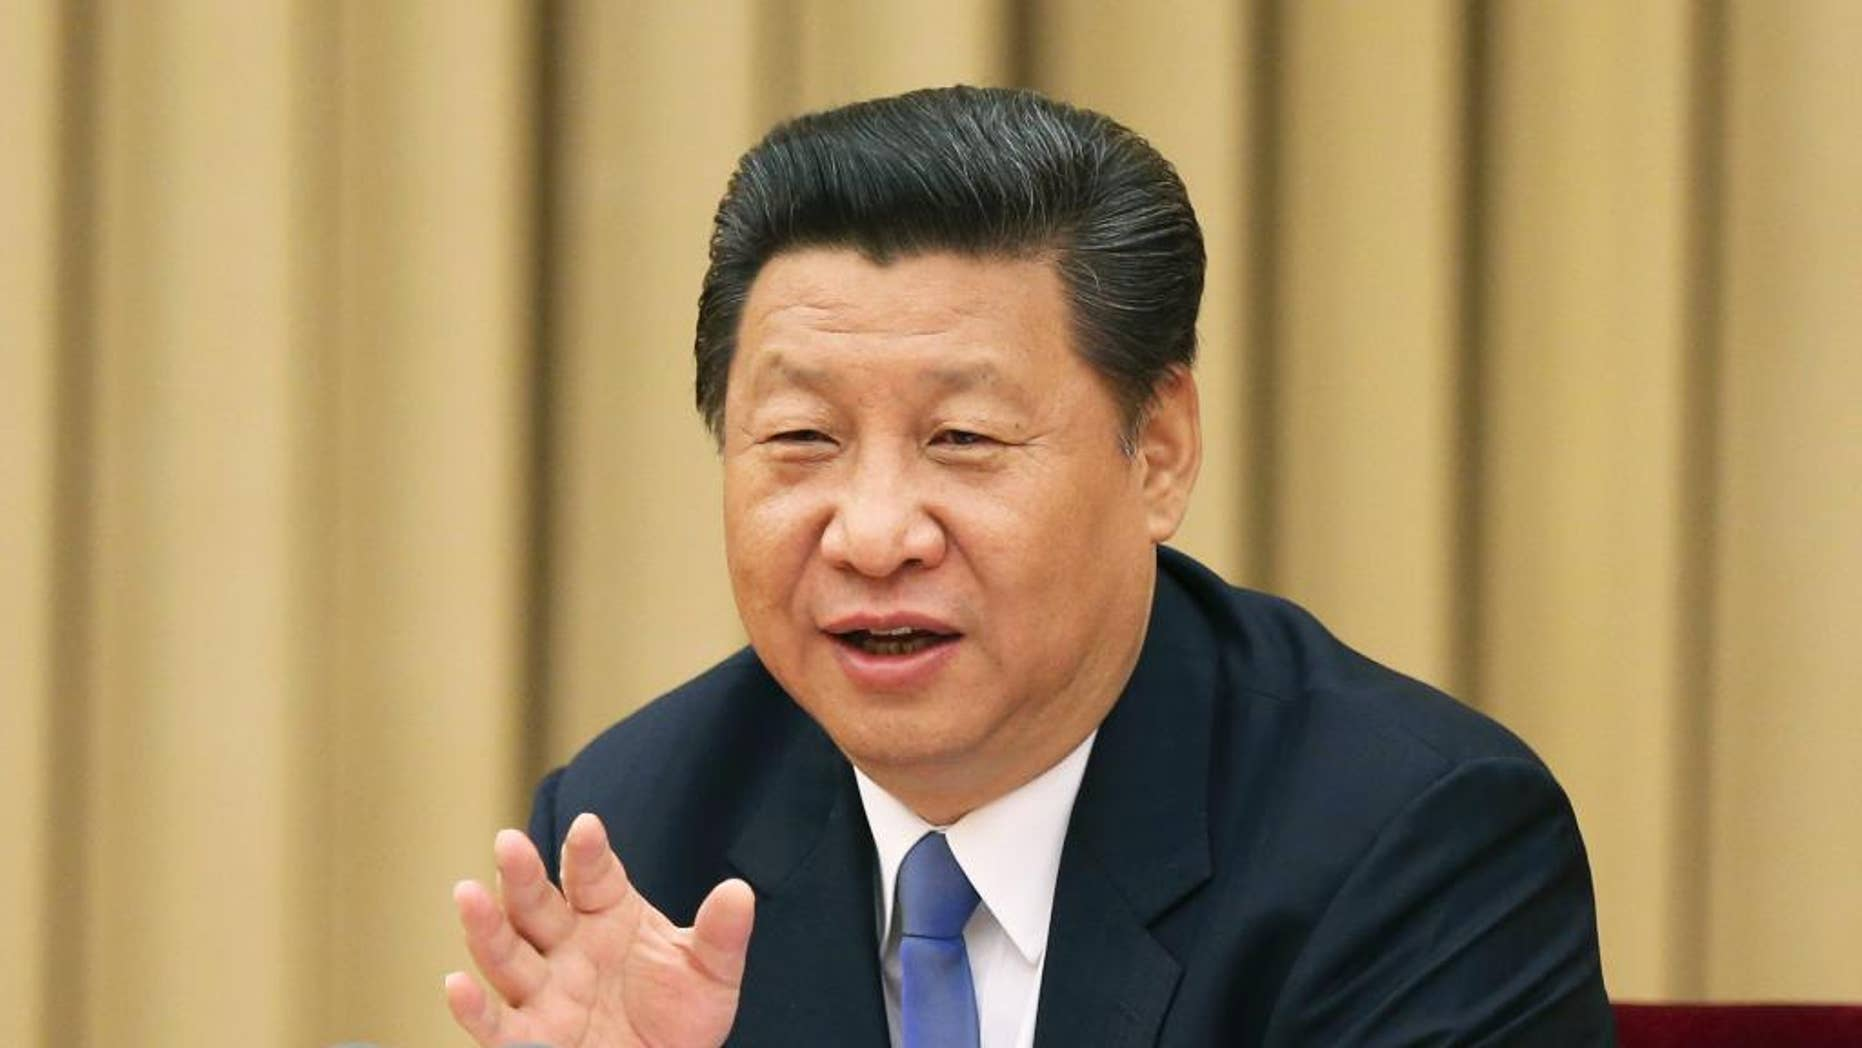 In this photo released by China's Xinhua News Agency,  Chinese President Xi Jinping addresses a high-level party meeting that sought to unite non-Communist Party groups and individuals in Beijing Wednesday, May 20, 2015. Xi warned that religions must be independent from foreign influence, as the government asks domestic religious groups to pledge loyalty to the state. China is ruled by the officially atheist Communist Party, and Beijing attempts to control a variety of religions and their spread. (Ma Zhancheng/XInhua via AP)  NO SALES